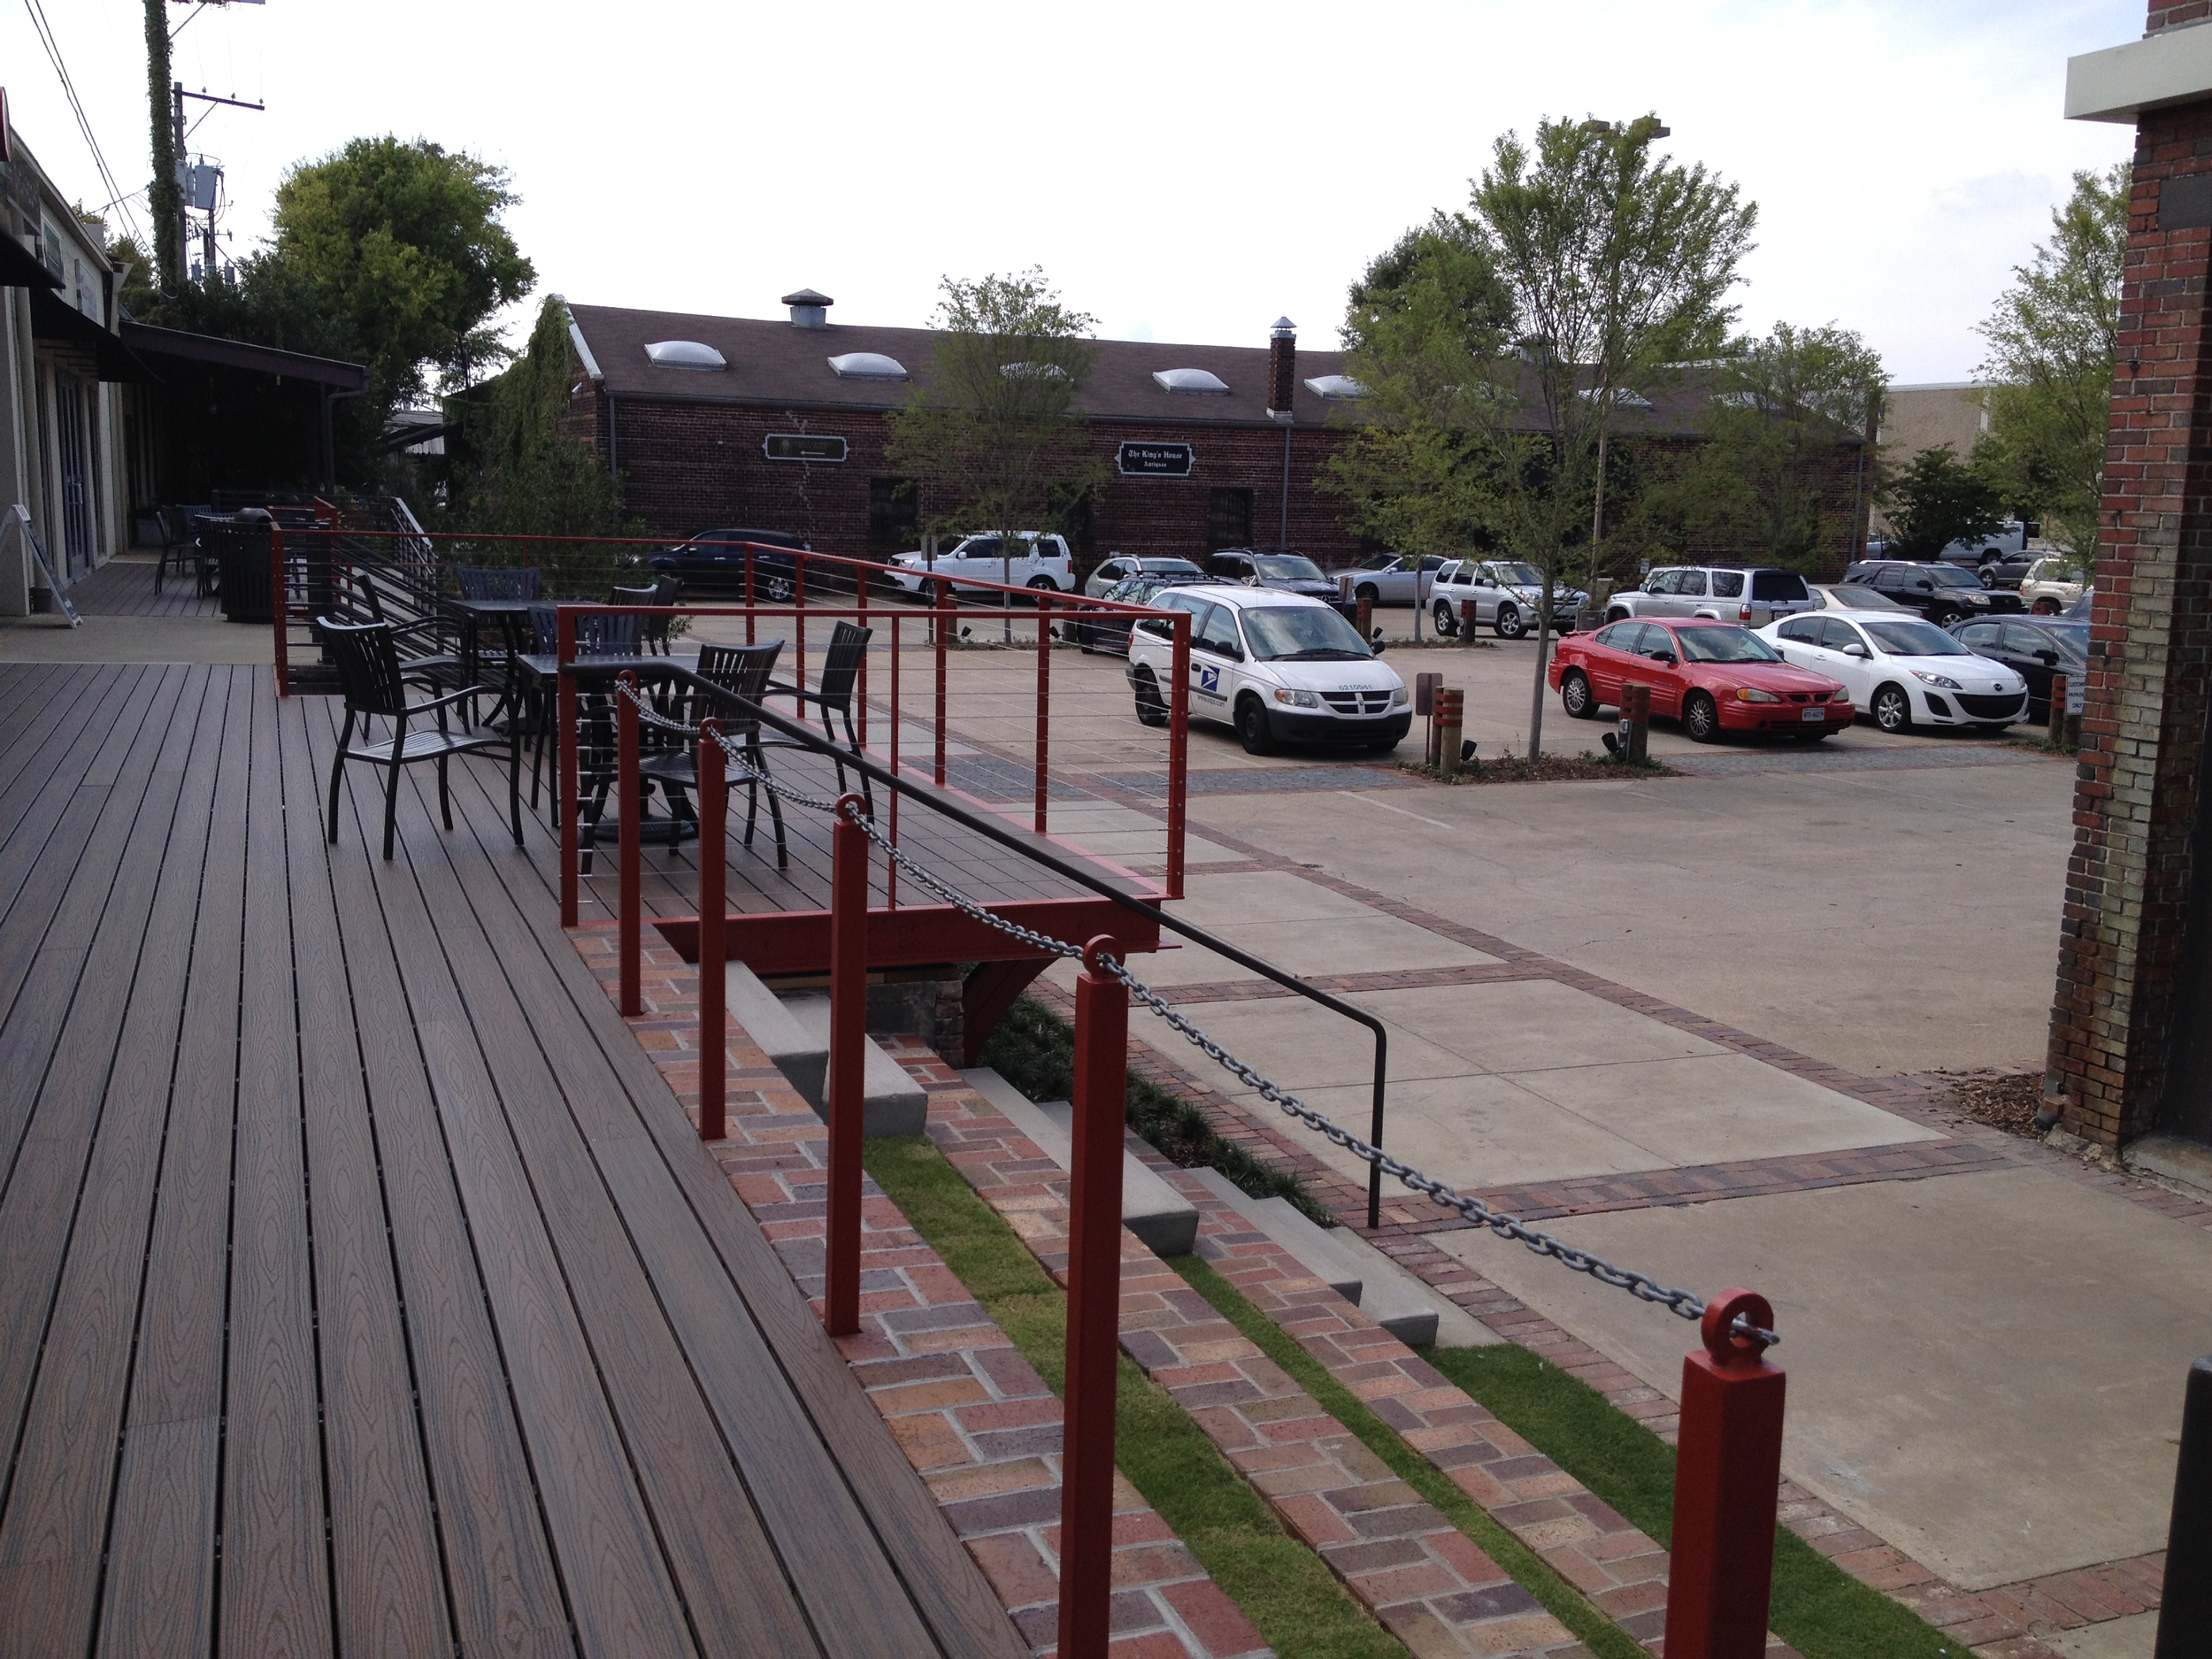 deck and parking.jpg